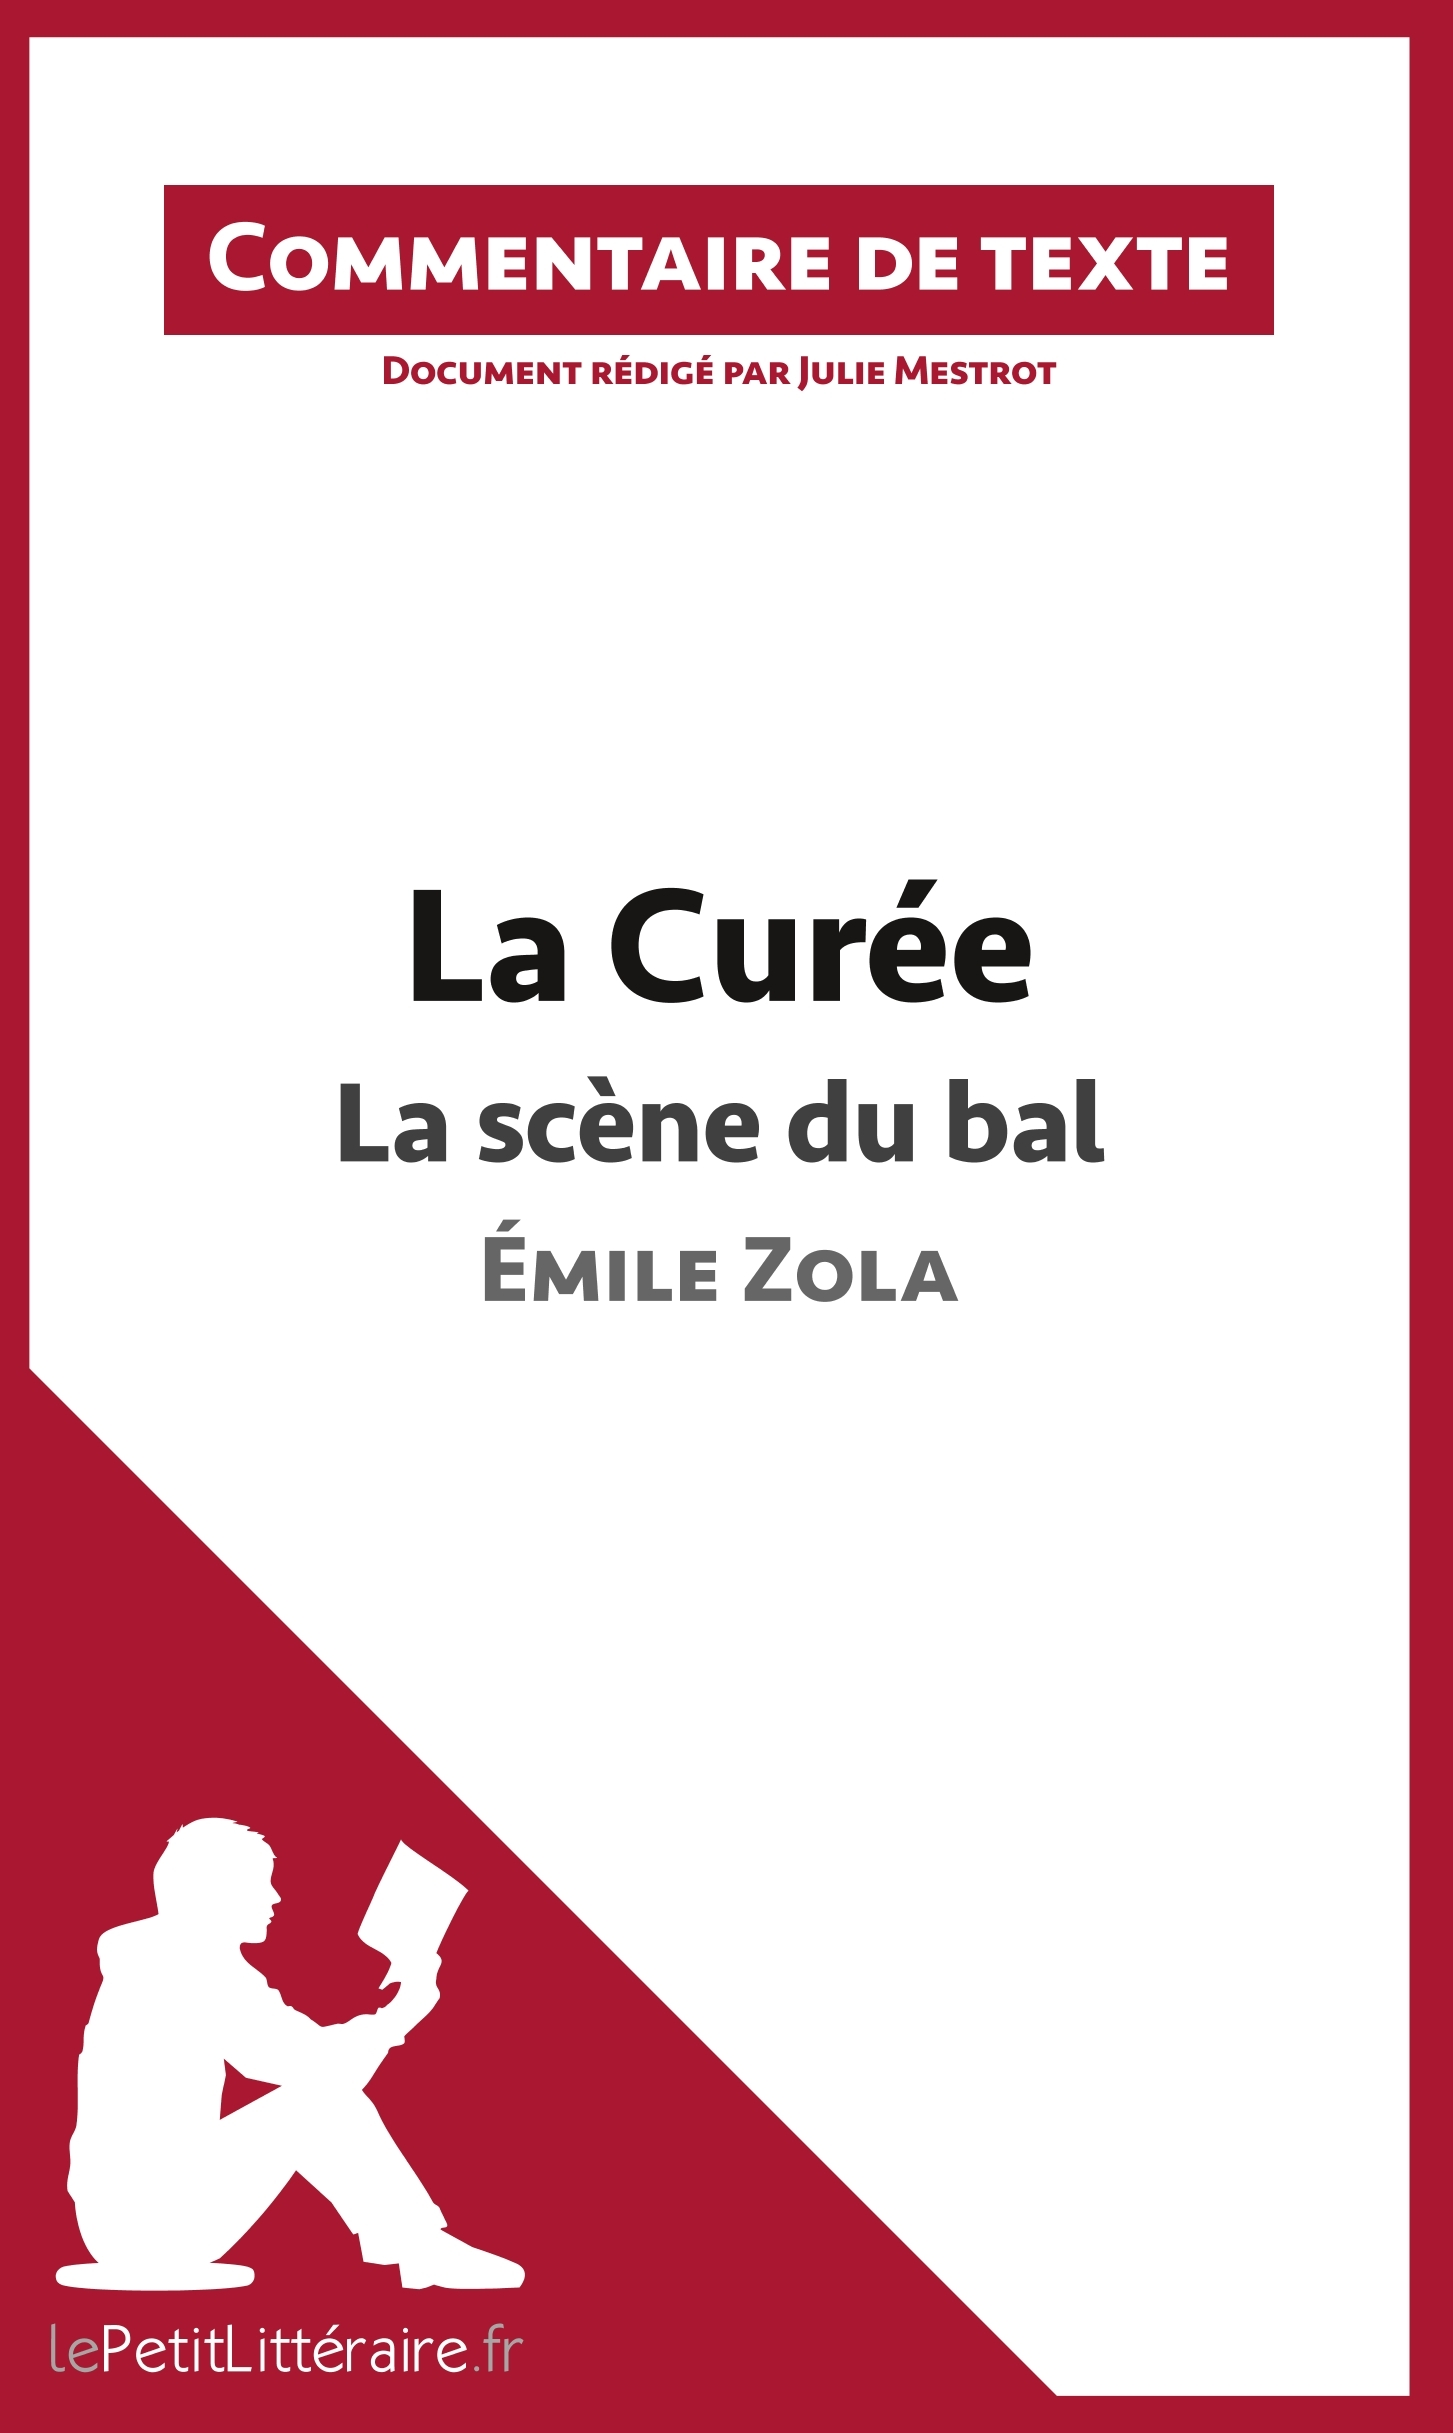 COMMENTAIRE COMPOSE LA CUREE DE ZOLA LA SCENE DU BAL